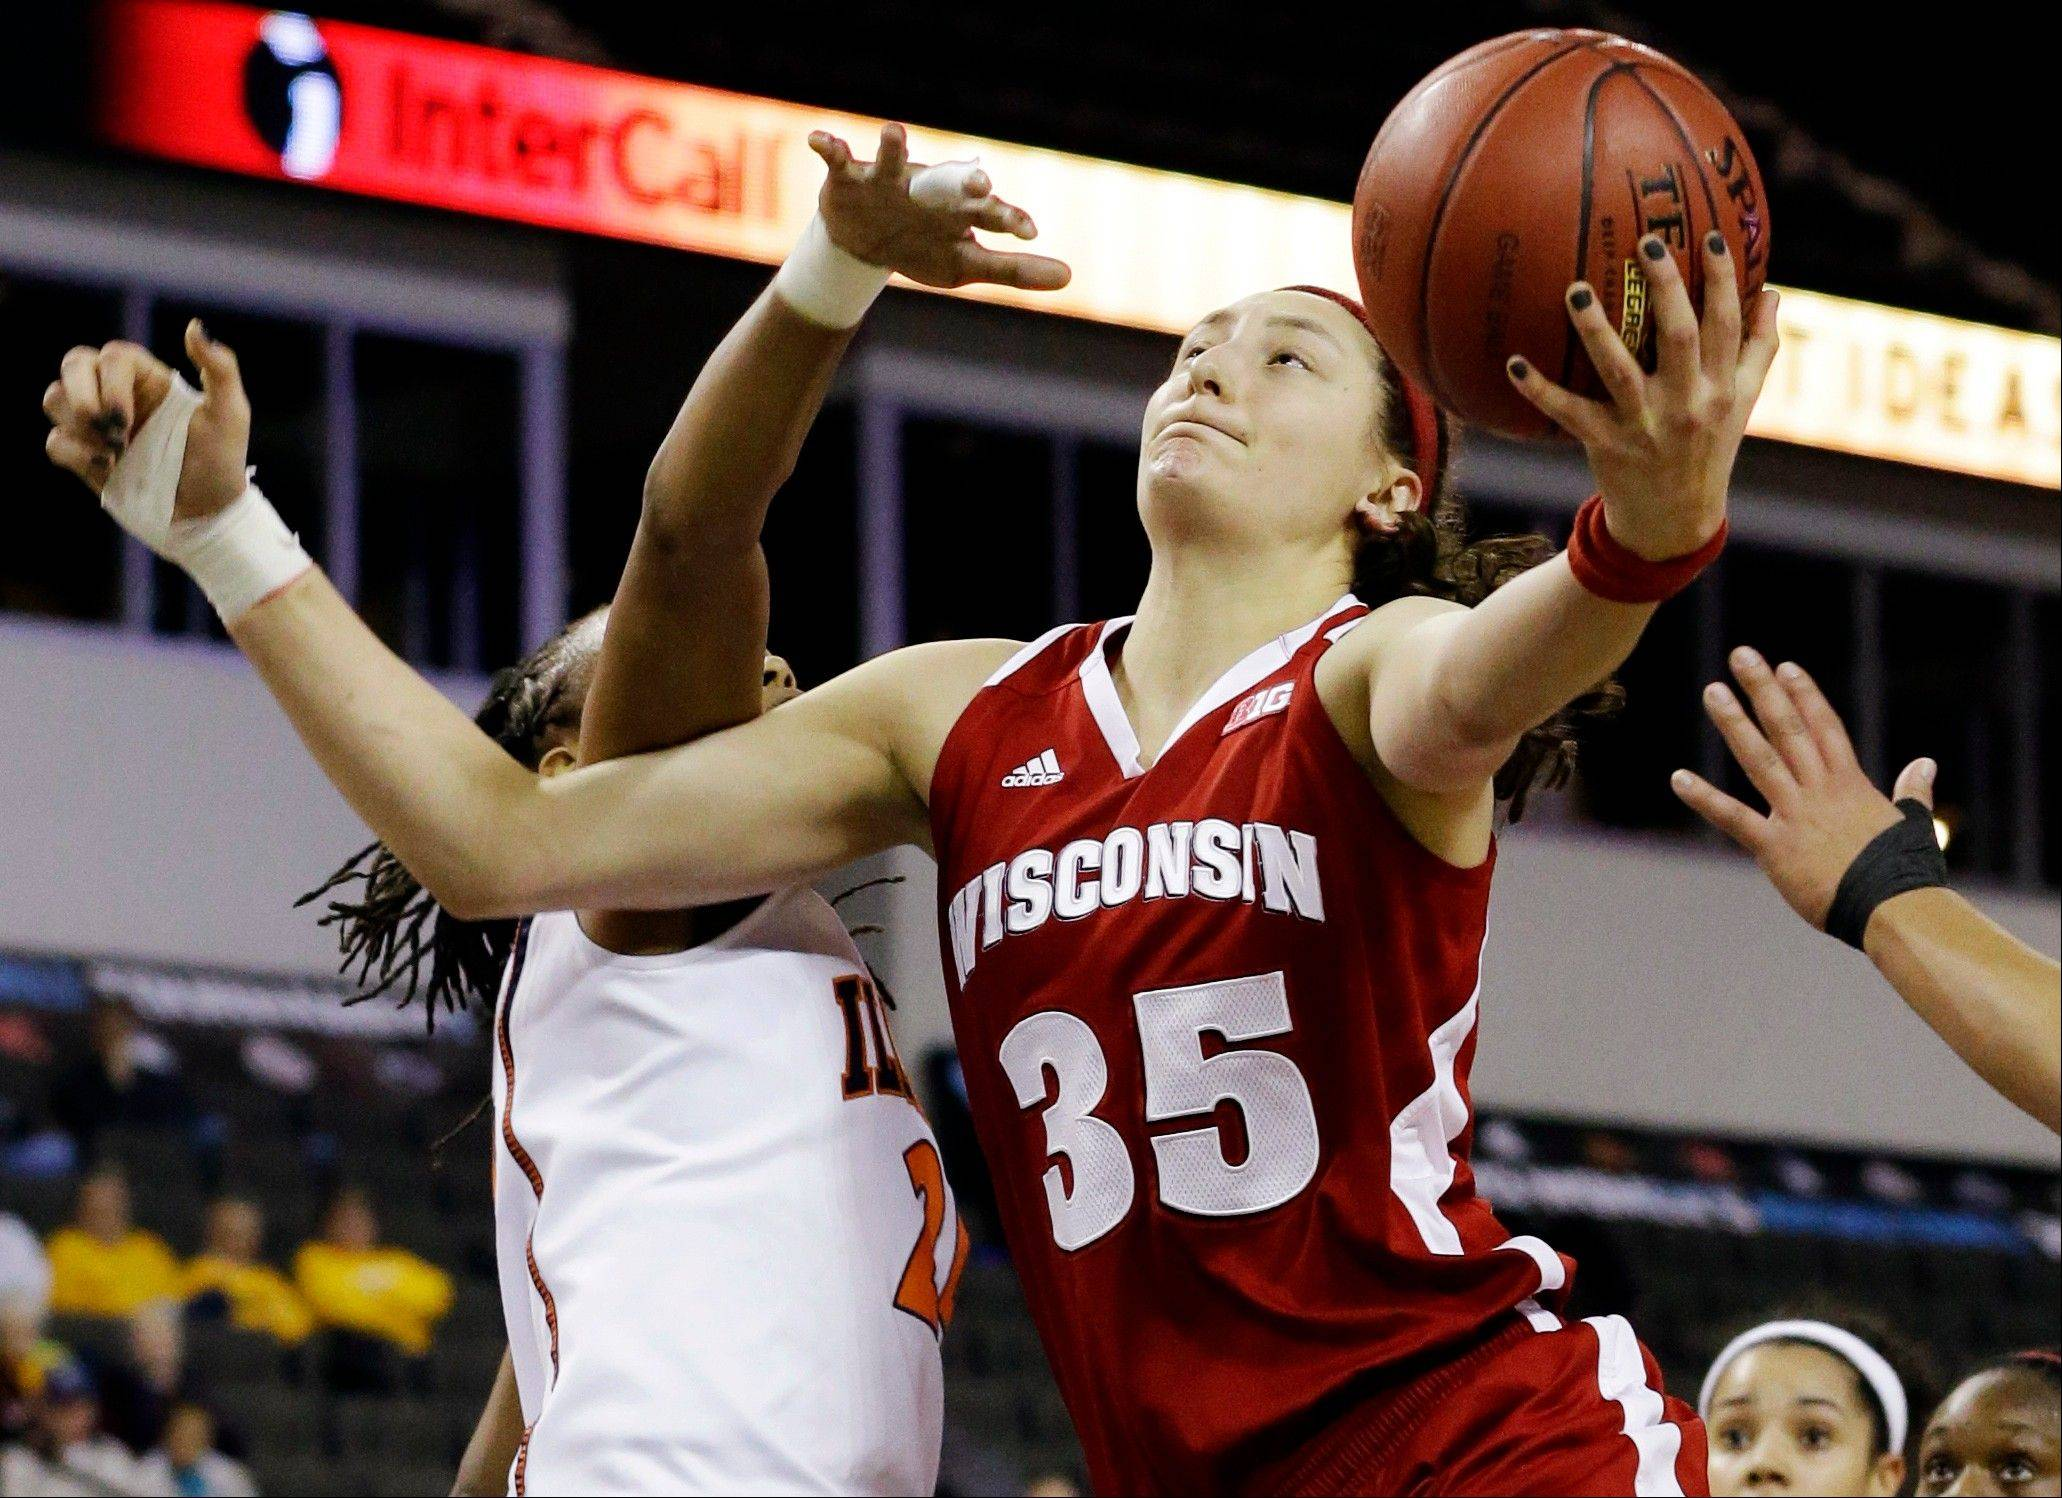 Wisconsin forward and Bartlett grad Jacki Gulczynski (35) drives to the basket against Illinois guard Tiera Stephen during the first half of an NCAA college basketball game in the Big Ten Conference tournament in Hoffman Estates, Ill., Thursday, March 7, 2013. Wisconsin won 58-57.